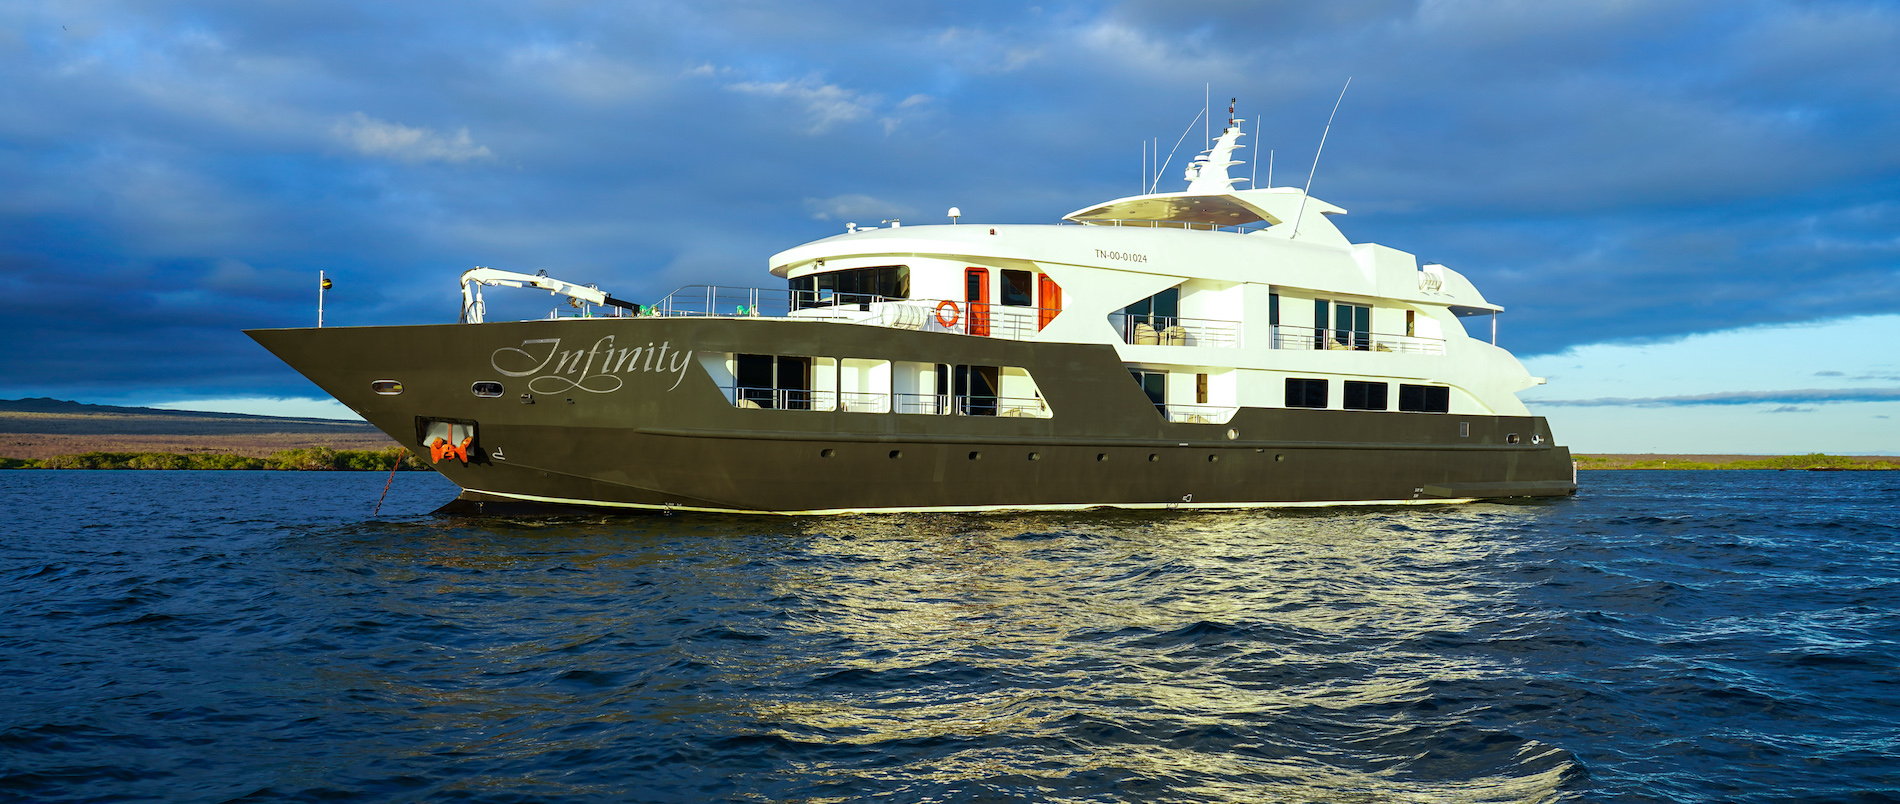 M/Y Infinity Galapagos Yacht